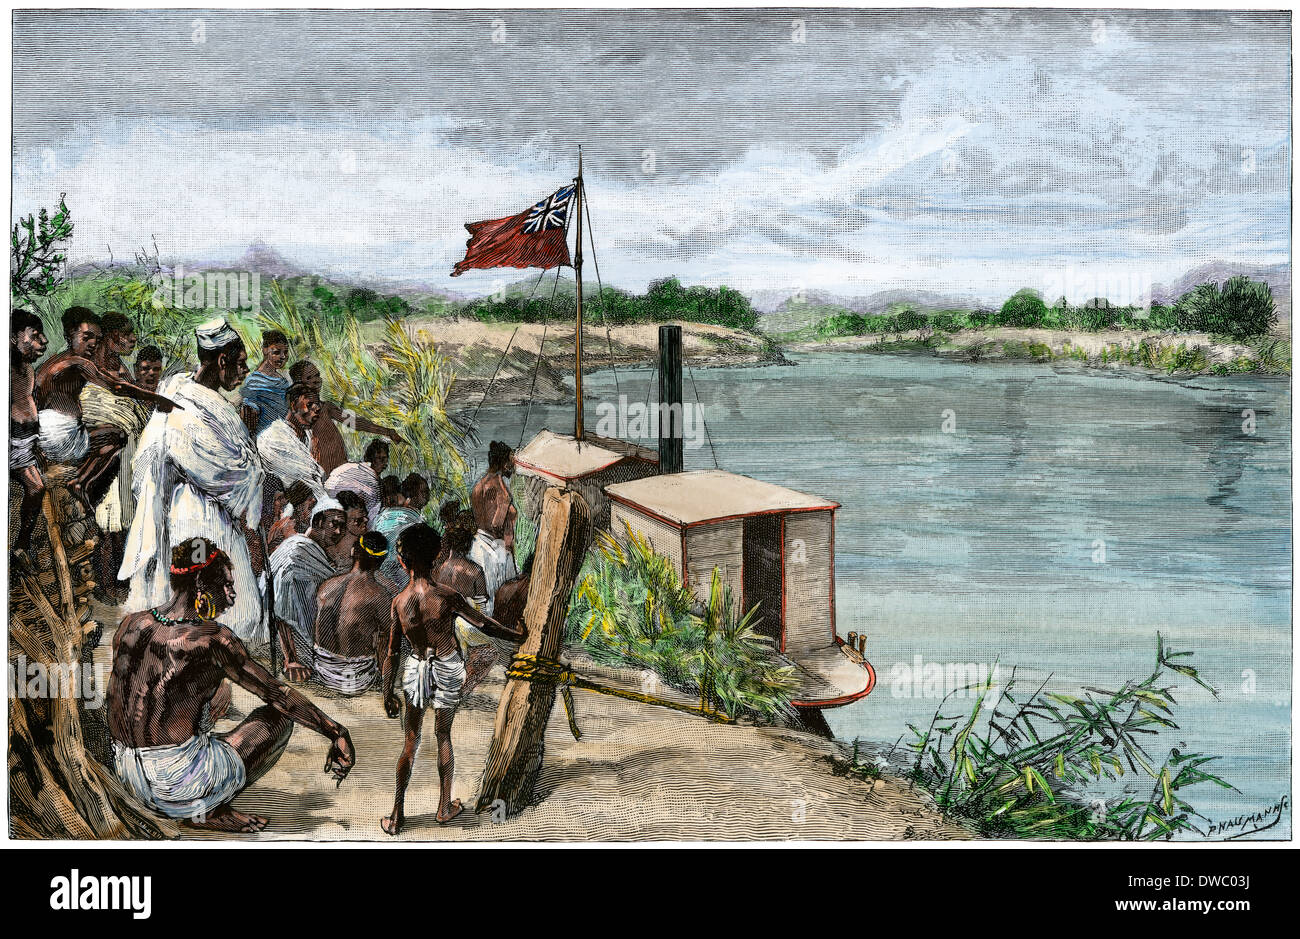 Trader hoisting the British flag on the Ruo River in what is now Mozambique, 1889. Hand-colored woodcut - Stock Image